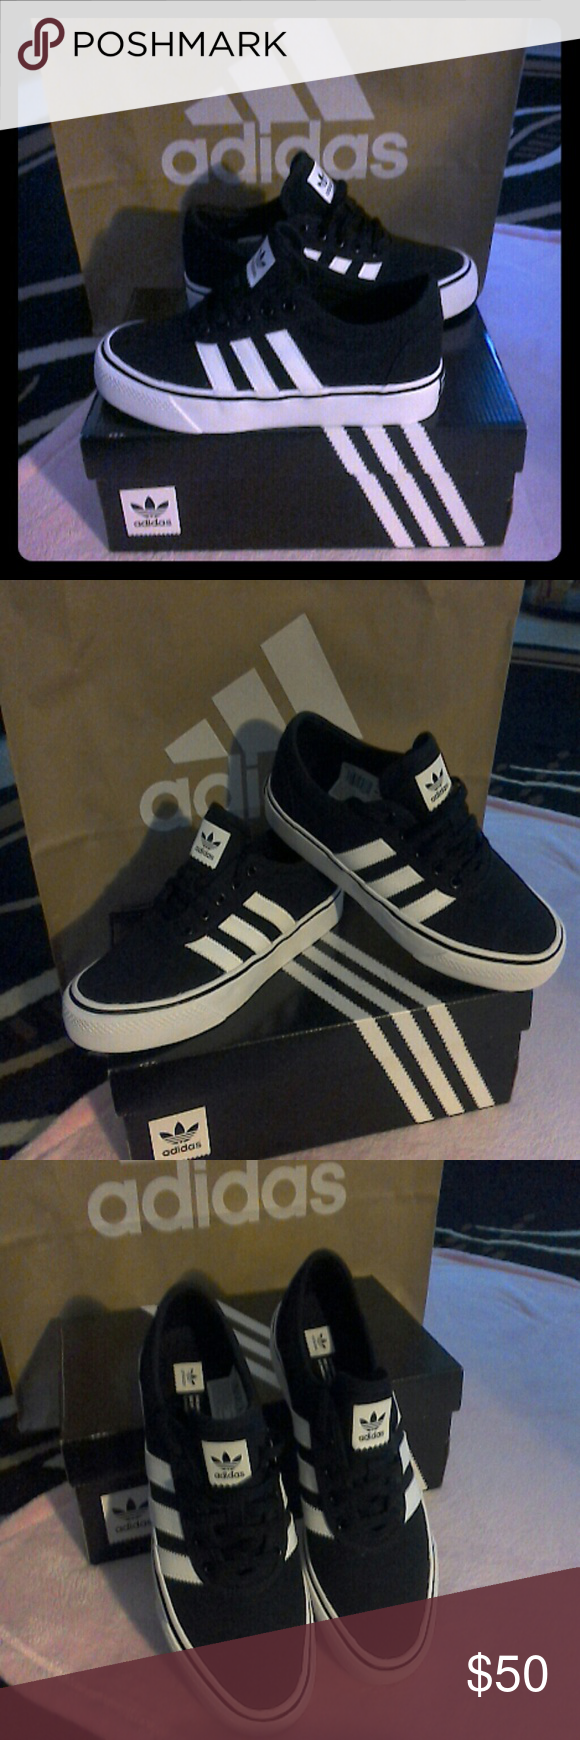 Adidas Adi- Ease J Sneakers Beautiful black and white canvas logo sneakers.  Youth size 1cdf2854e6